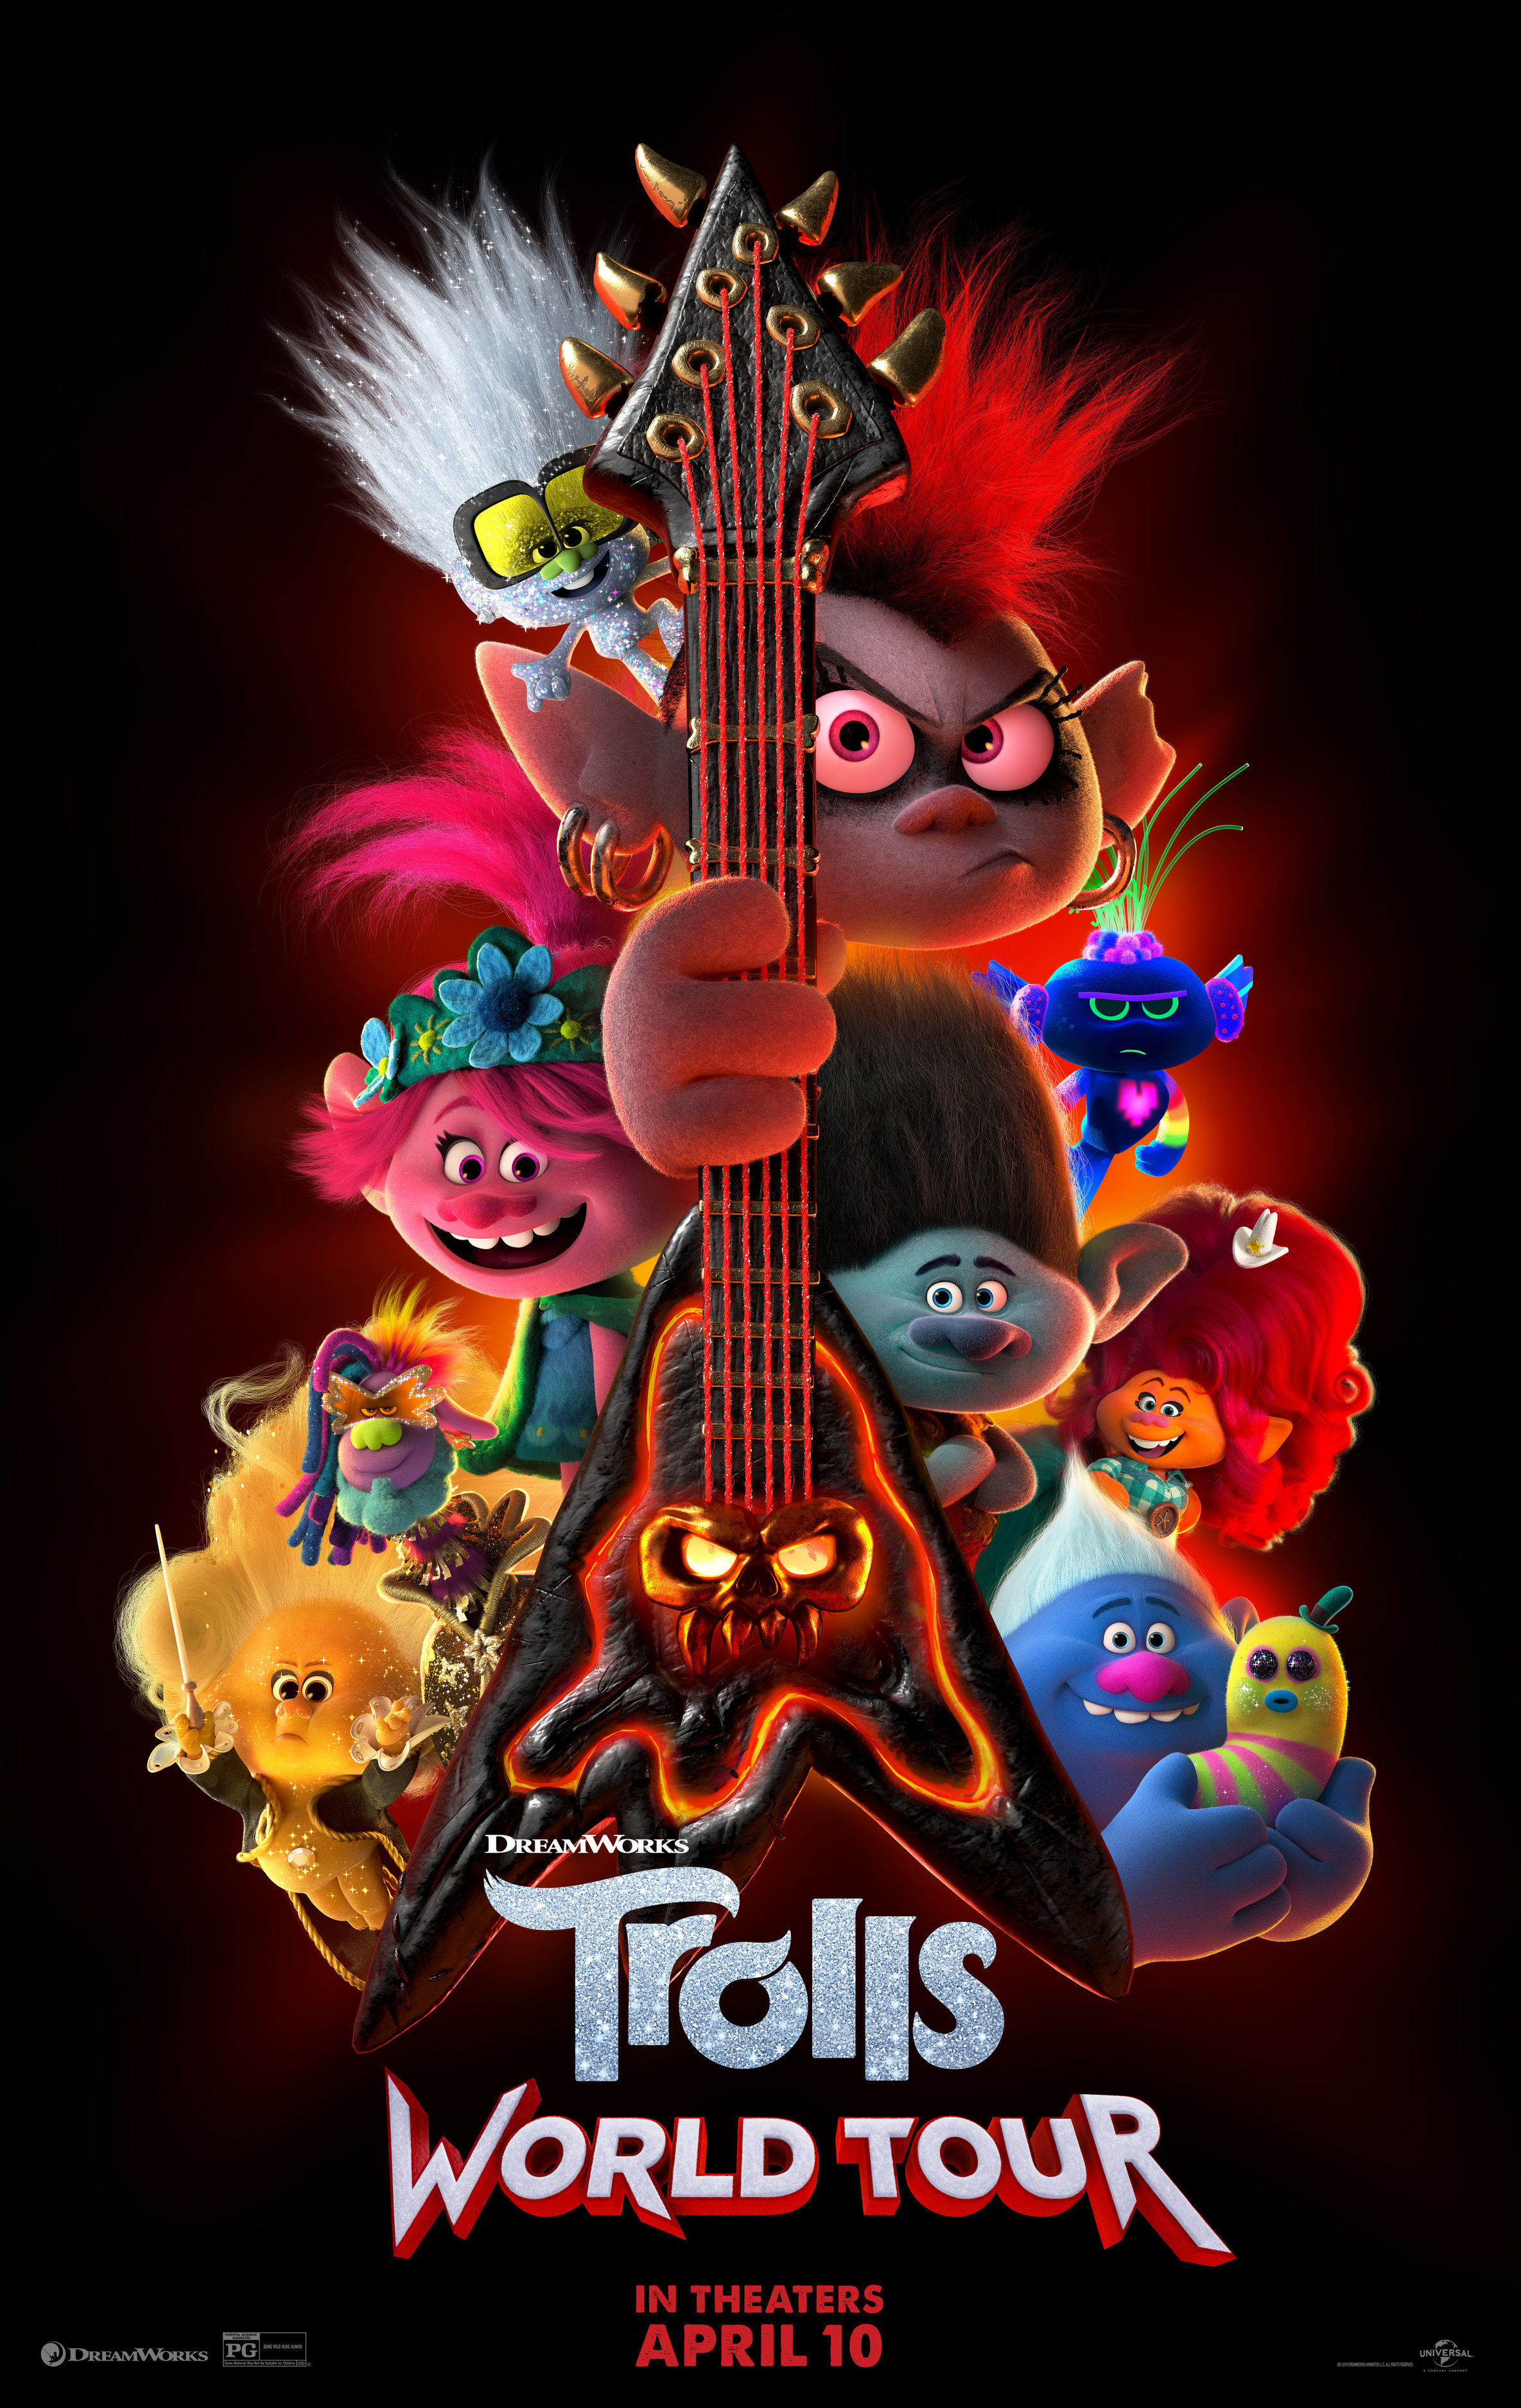 Trolls World Tour Guide To The New Cast Members Who S Playing Who Gallery Wonderwall Com